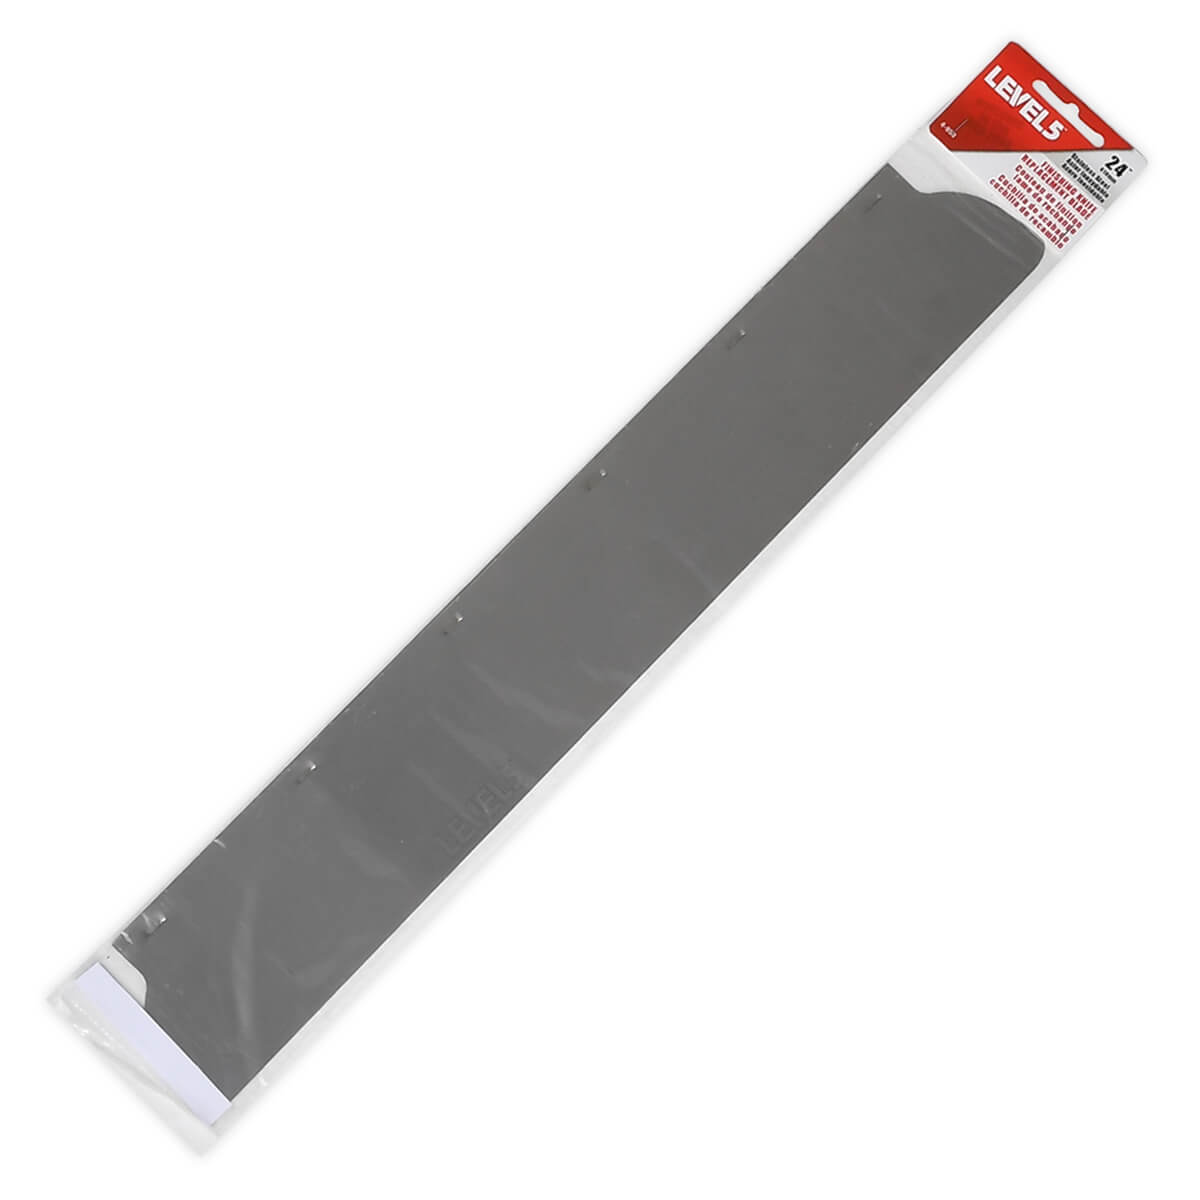 LEVEL5 24-Inch Drywall Skimming Blade Insert | 4-953